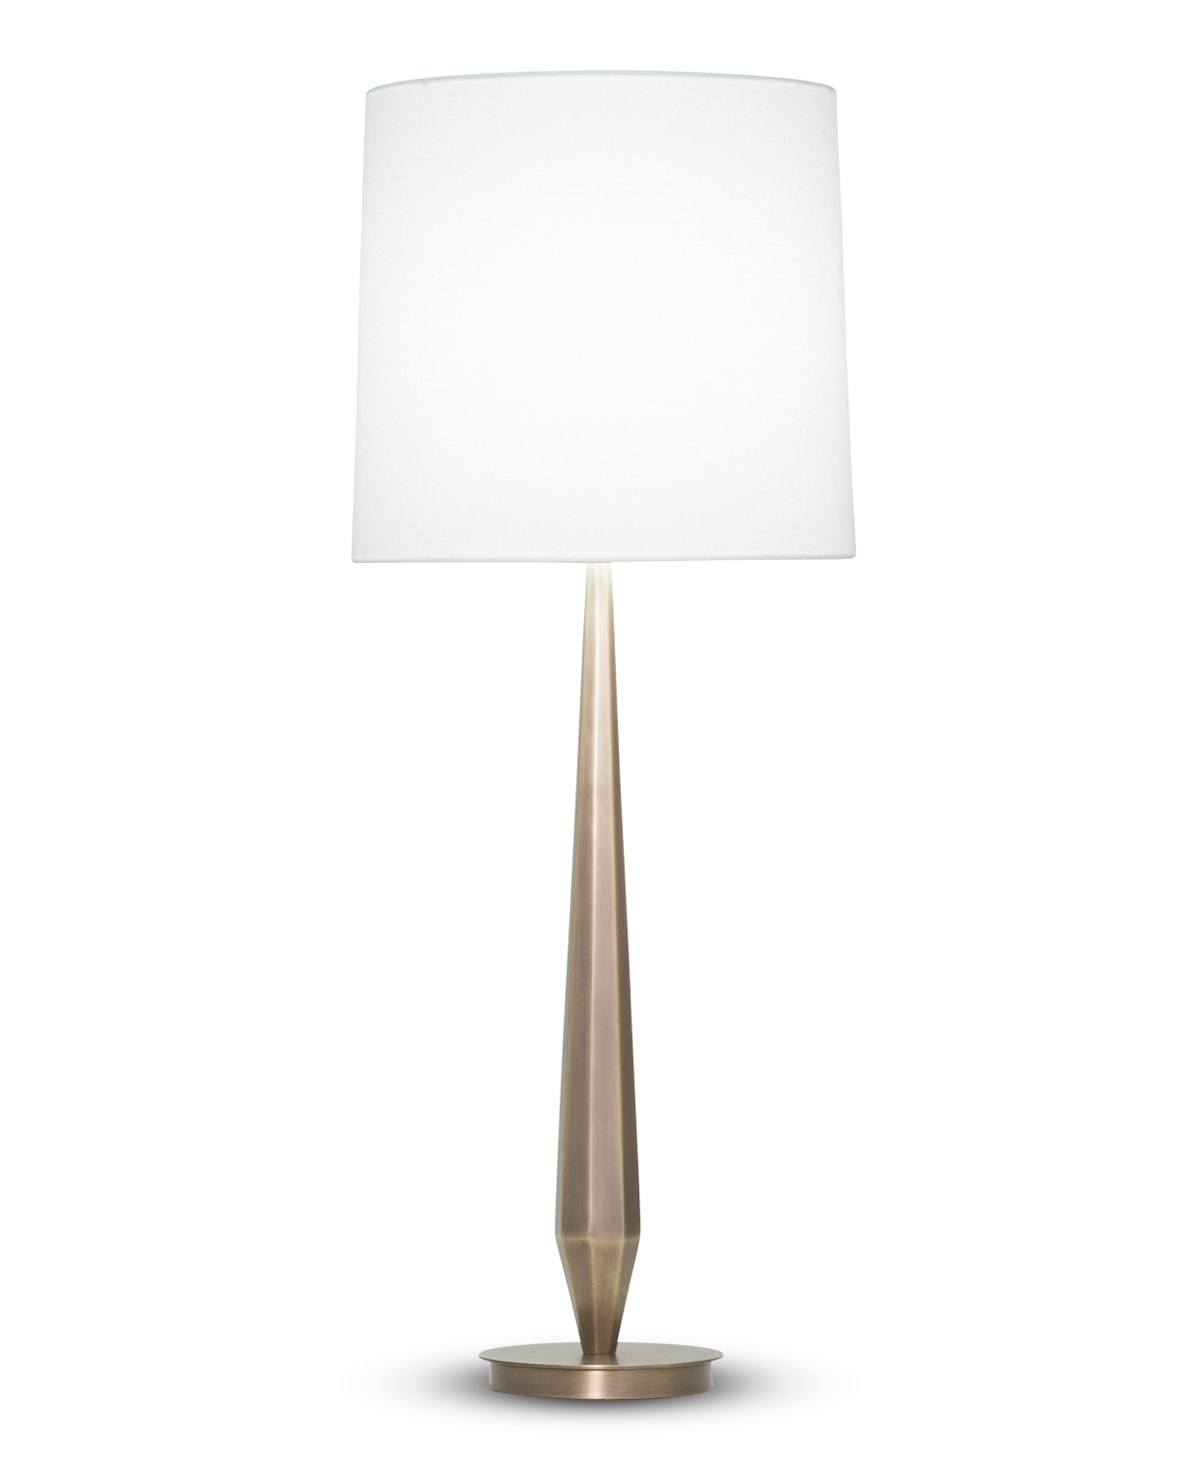 FlowDecor Zoe Table Lamp in metal with antique brass finish and off-white linen tapered drum shade (# 3921)